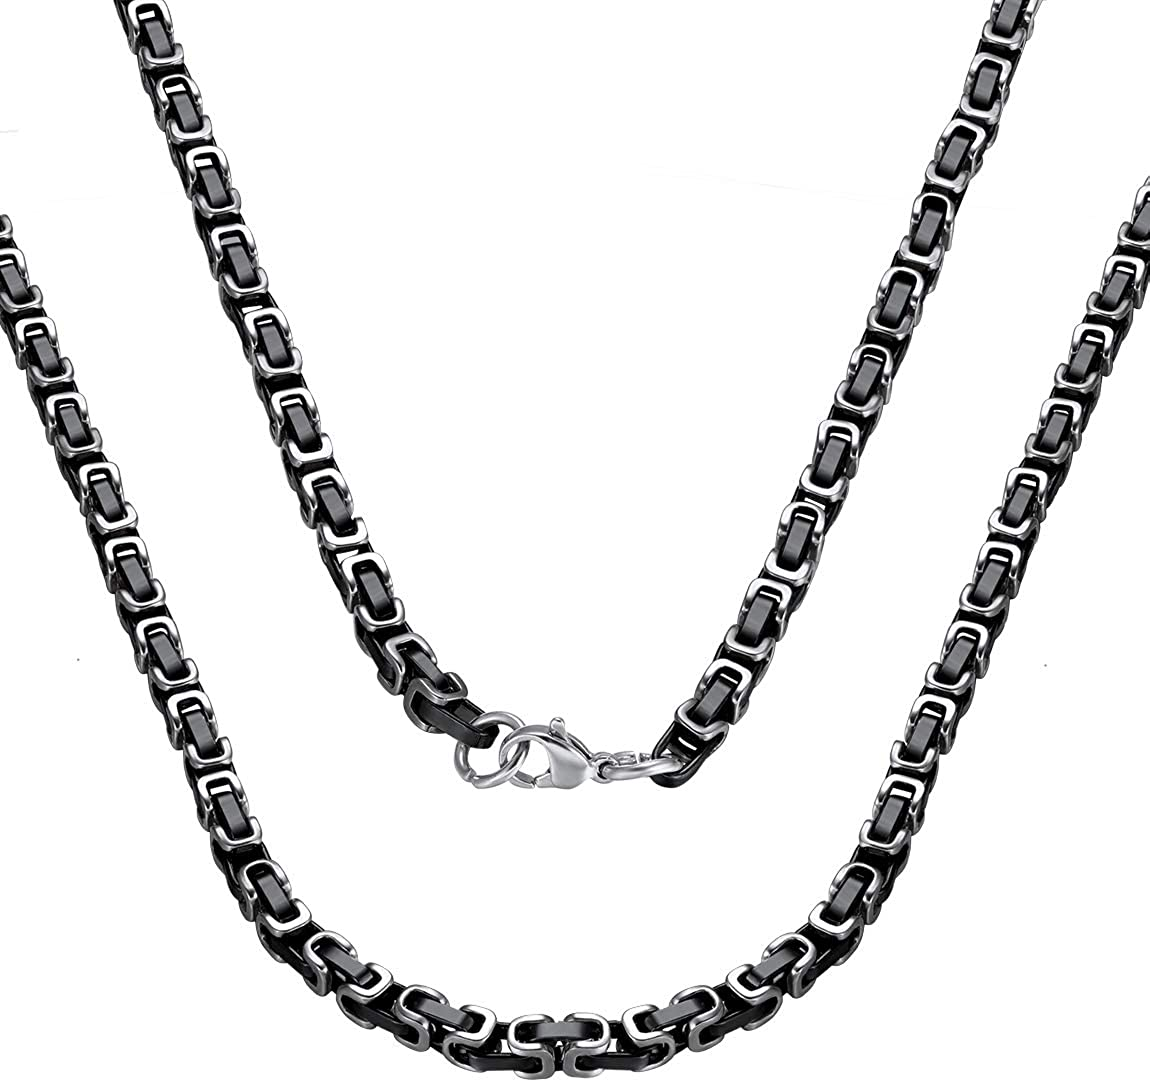 ChainsPro Men Sturdy Byzantine Chain, 4/6/8/10mm Width, Polished 316L Stainless Steel & 18K Real Gold Plated, Black, 18 inch-30 inch (Send Gift Box)